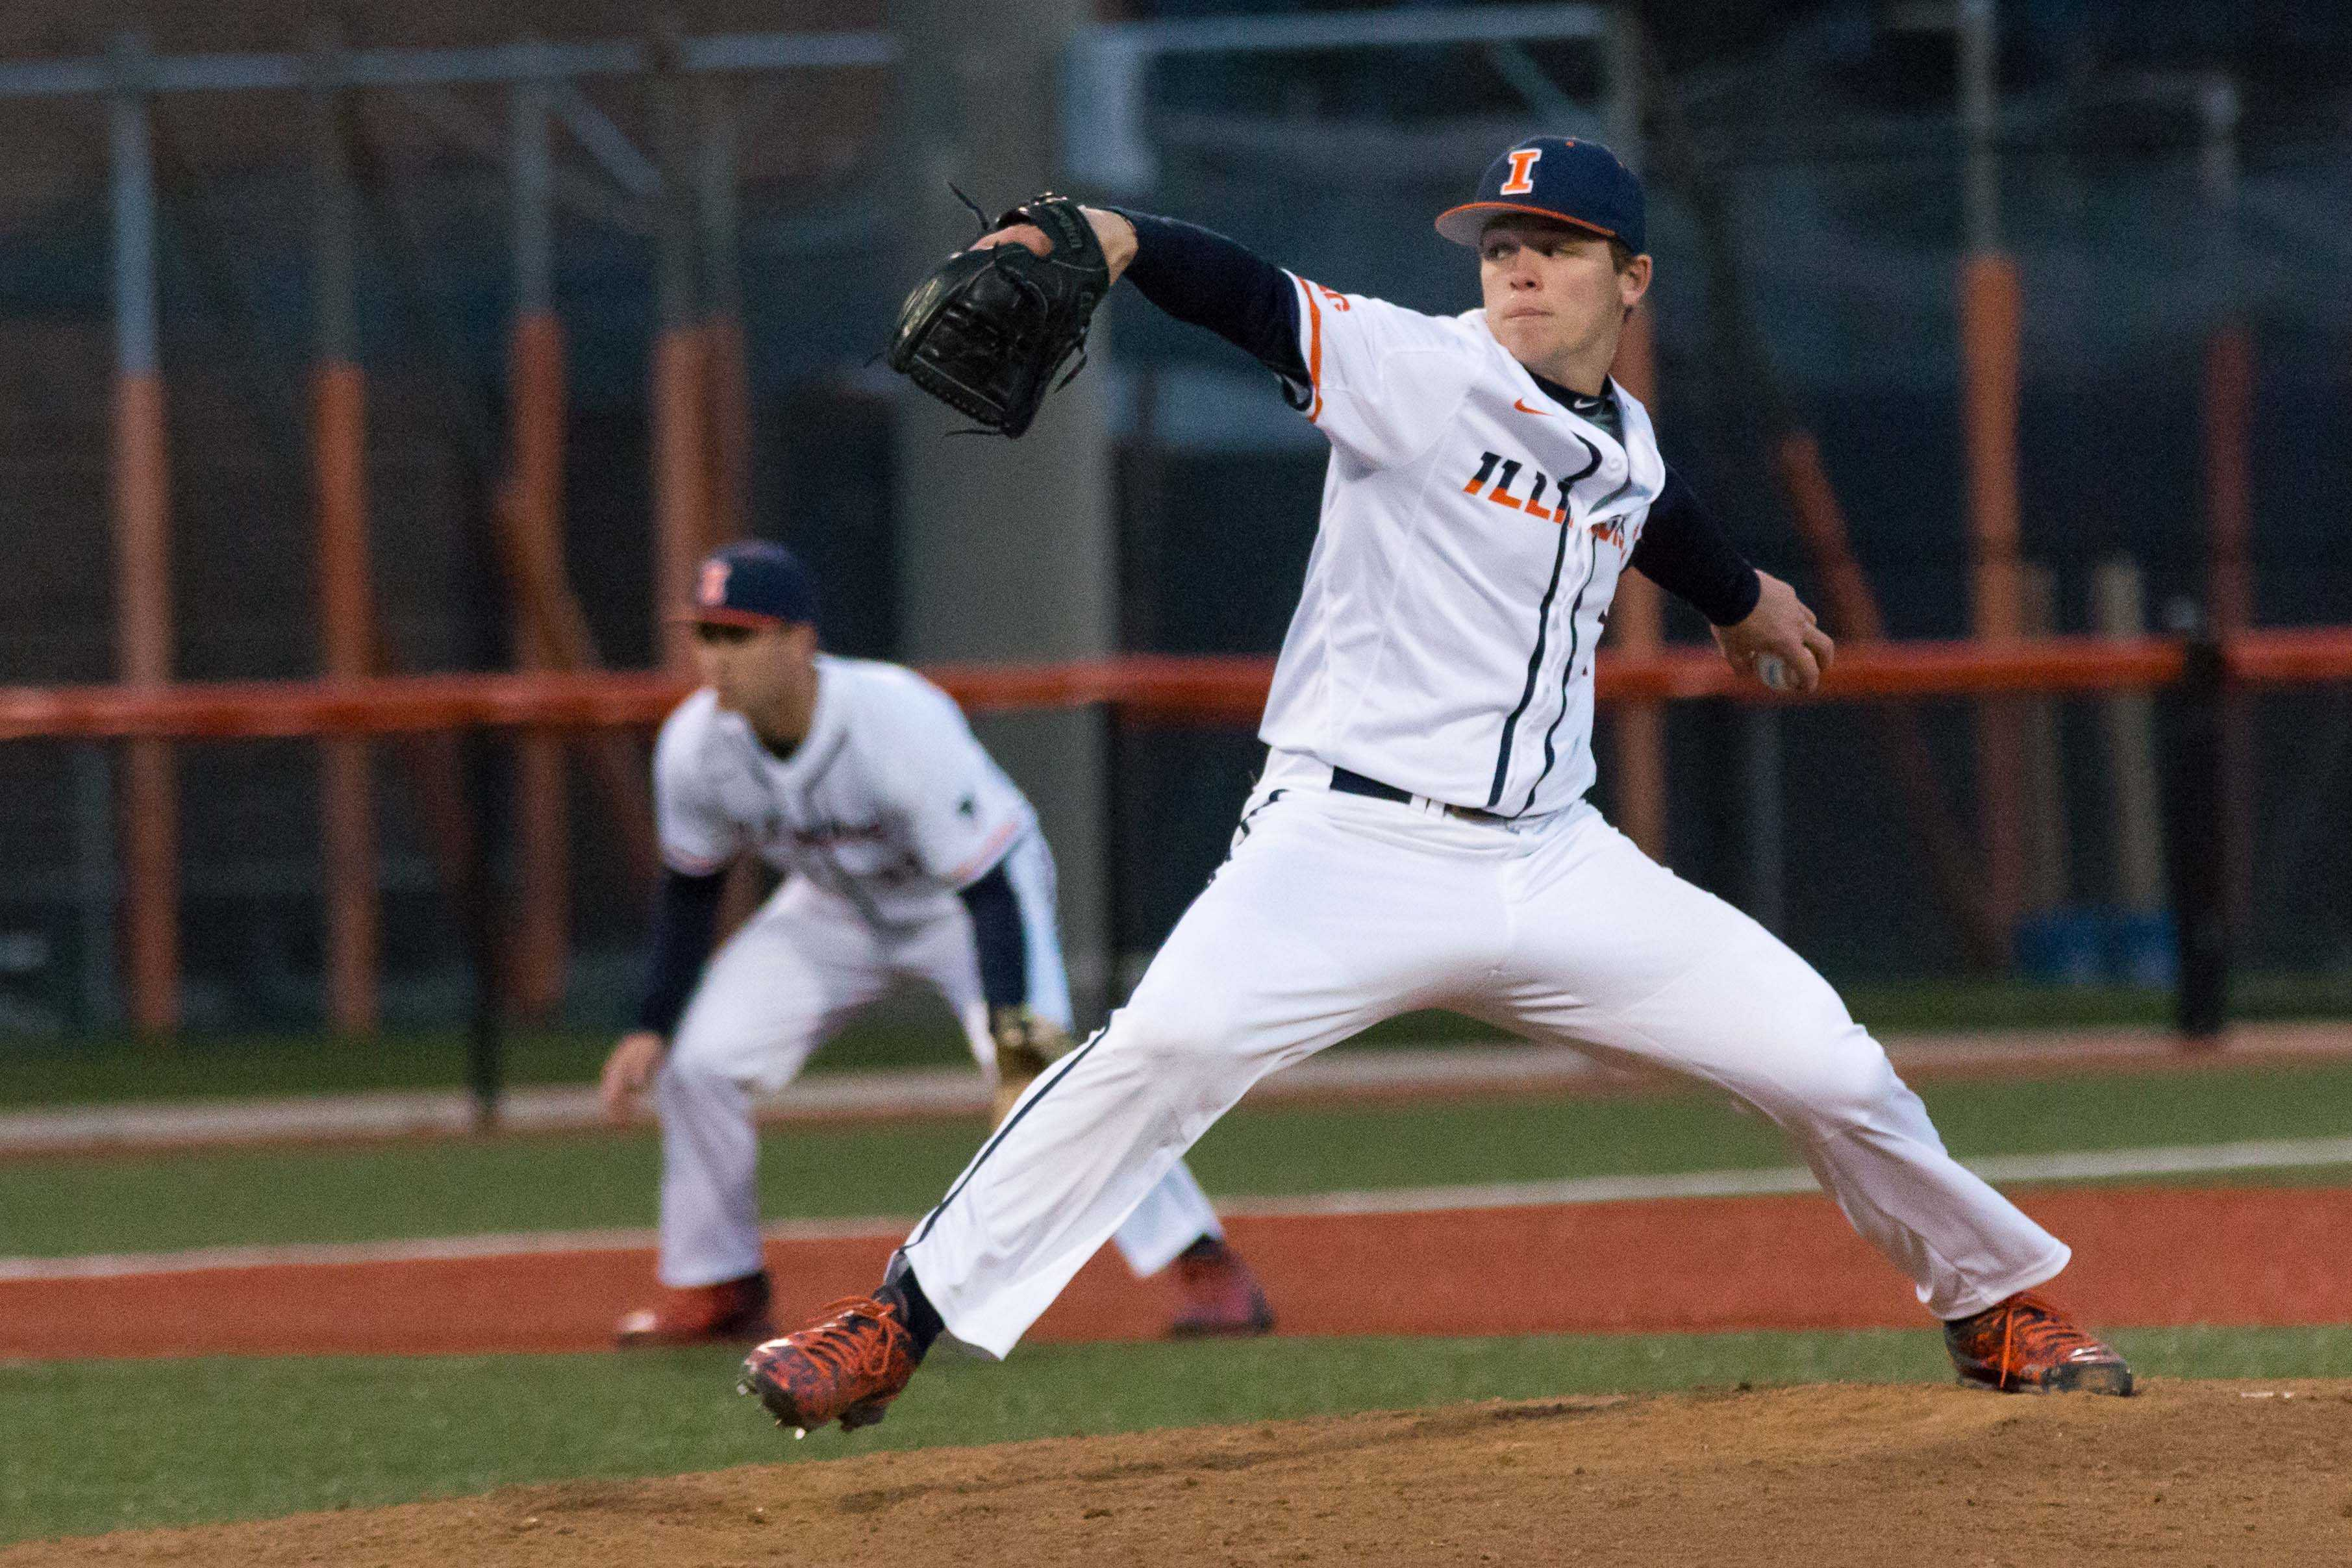 Illinois' Jack Yalowitz delivers the pitch on April 5. Yalowitz has not showed his youth, becoming one of the Illini's most reliable.